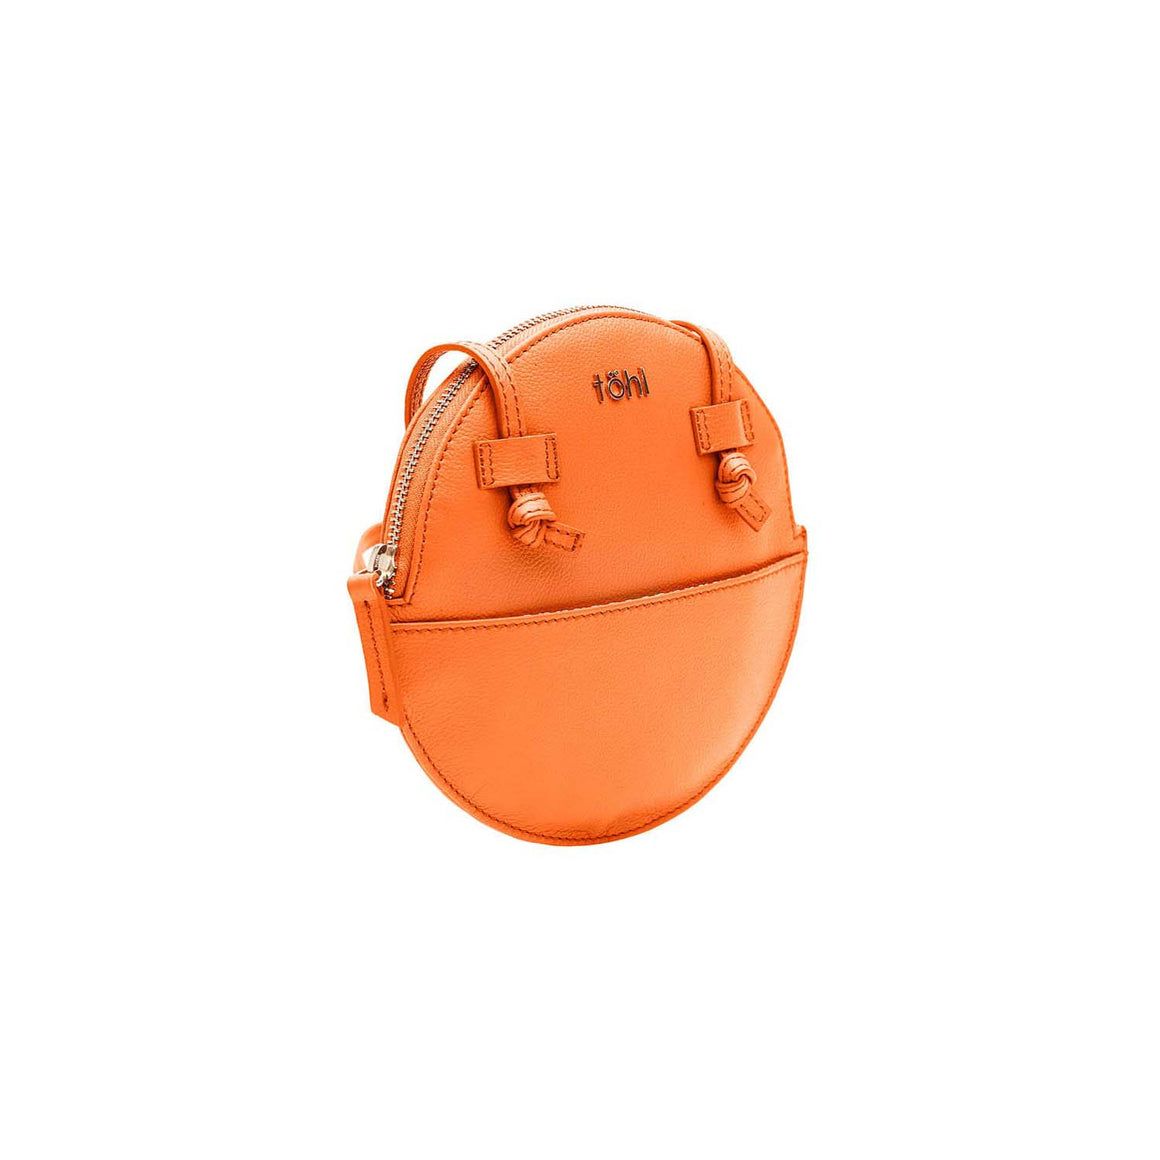 SG 0026 - TOHL LAVO WOMEN'S SLING & CROSSBODY BAG - ORANGE MELON